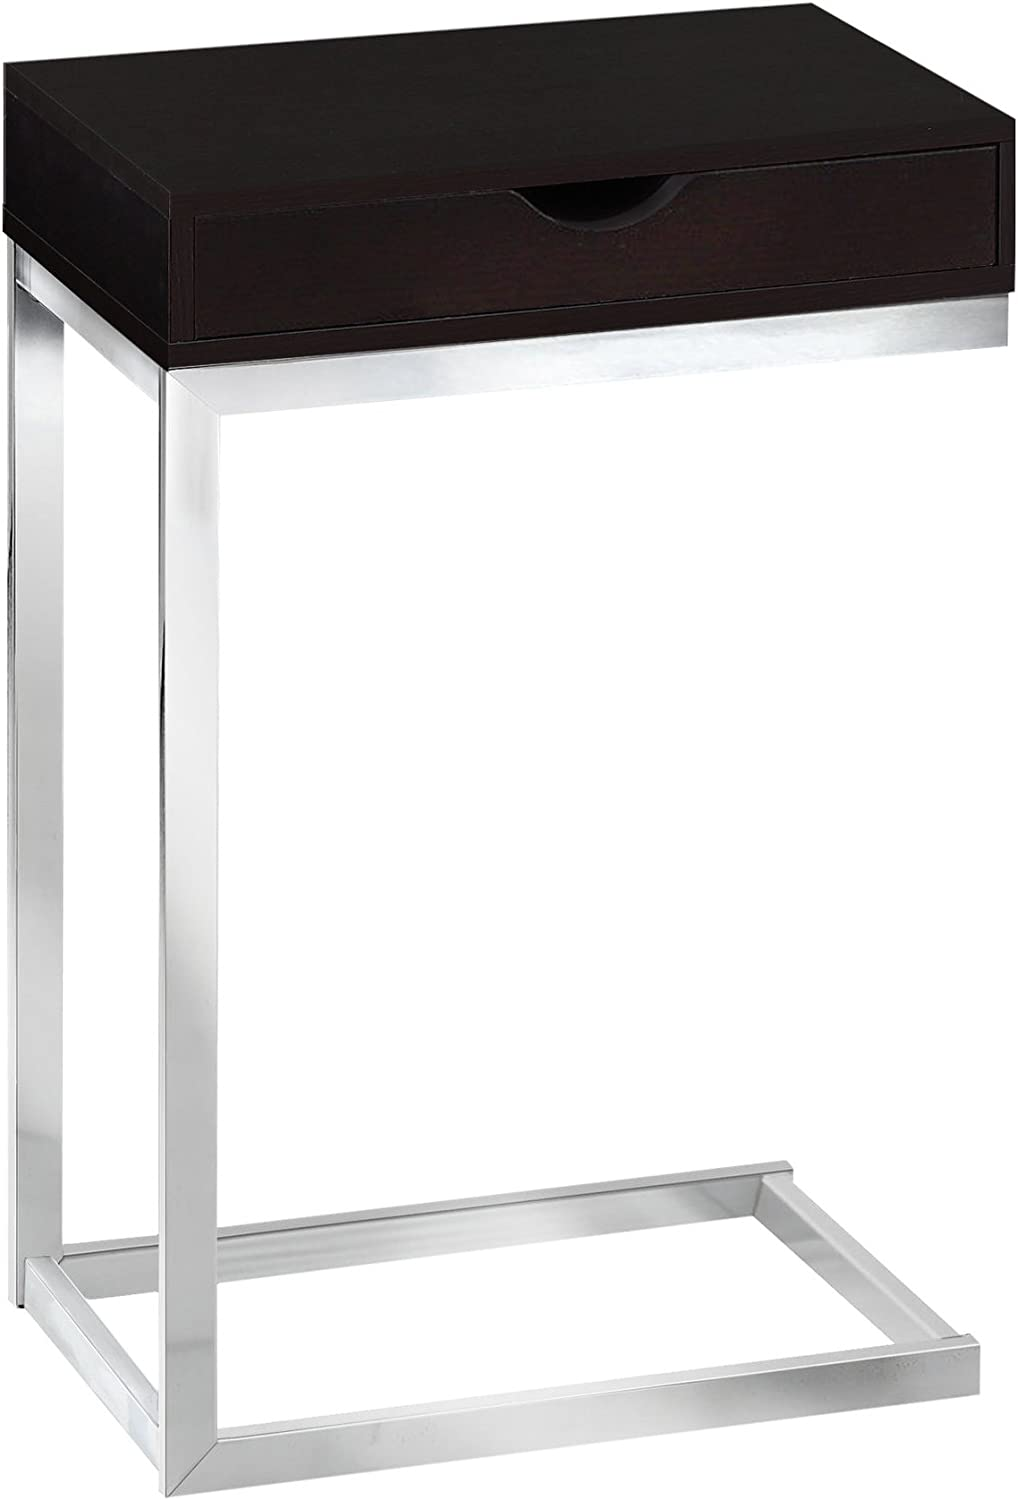 Monarch Specialties I 3031, Accent Table with a drawer , Chrome Metal, Cappuccino